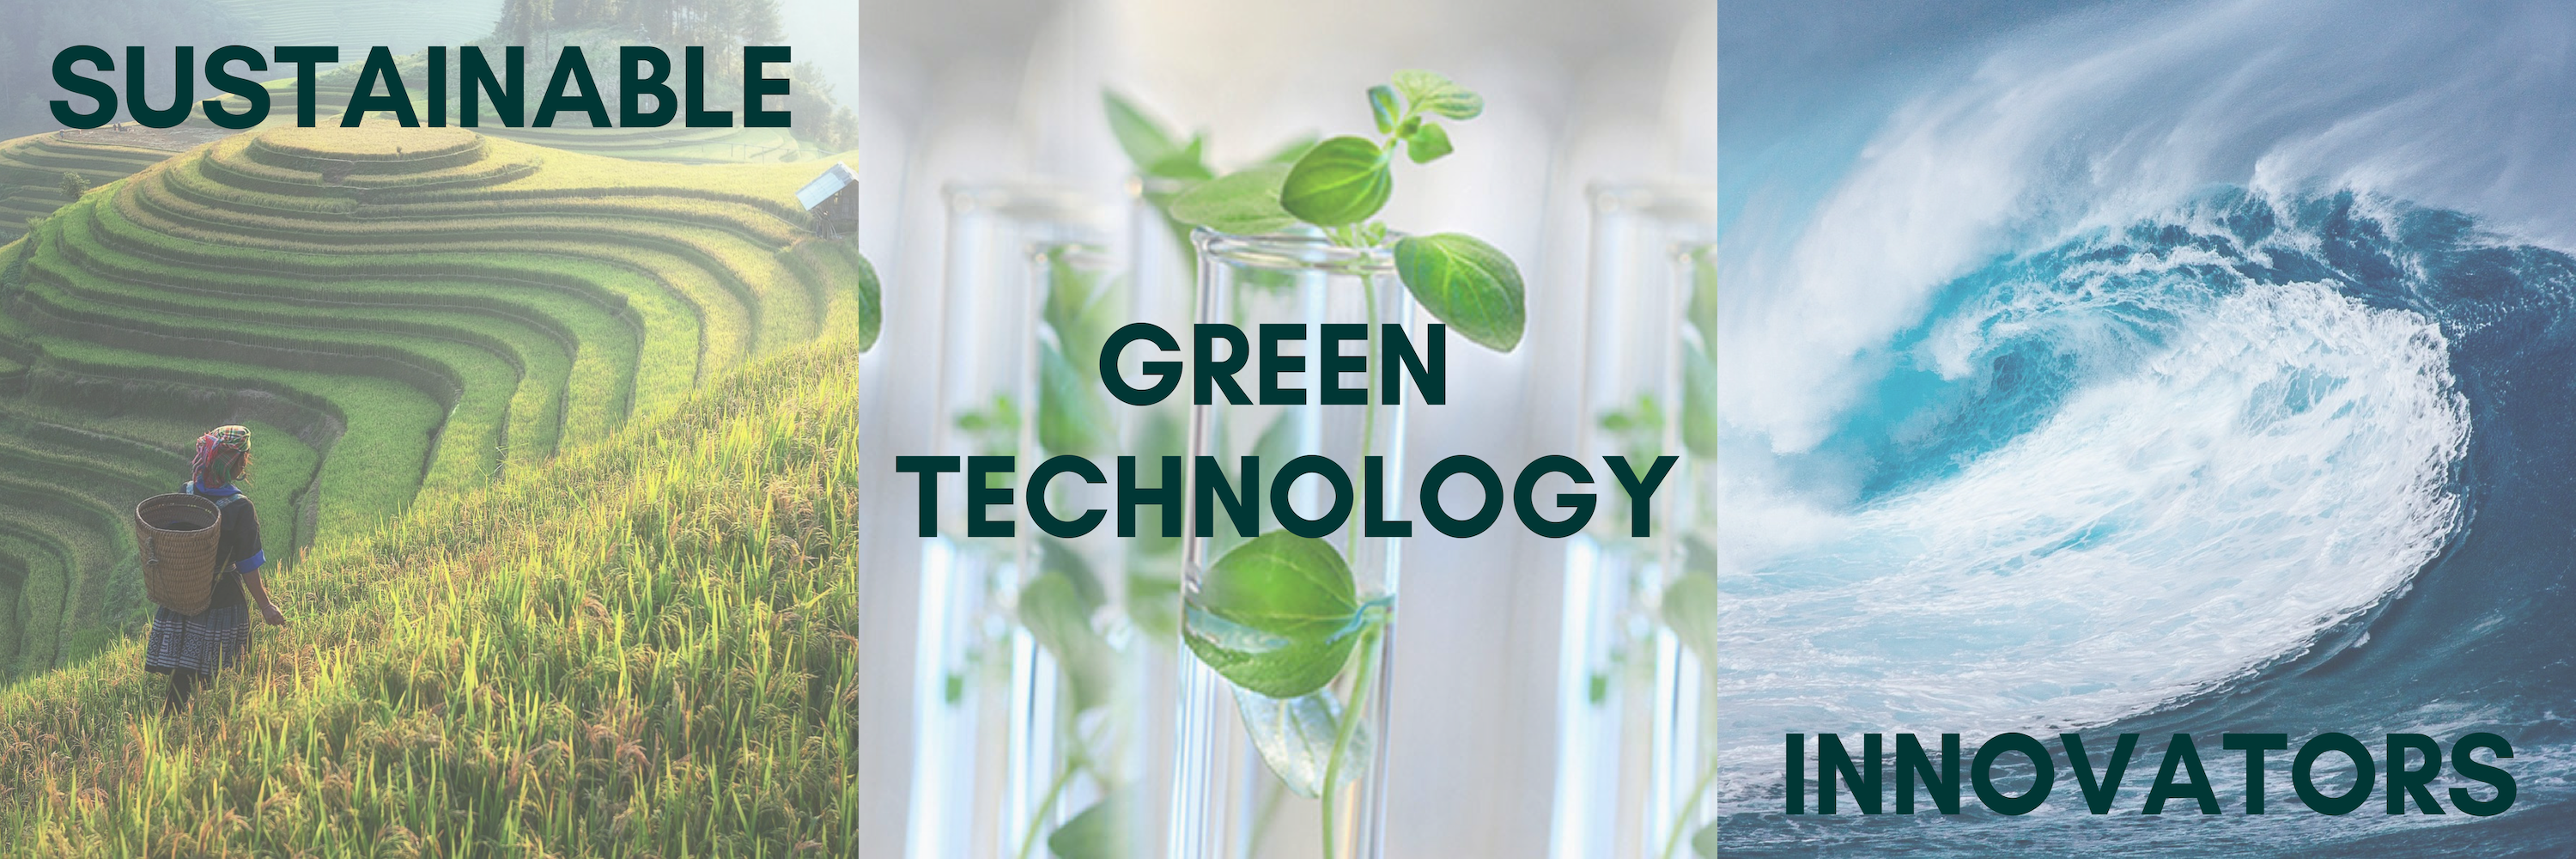 Sustainable Green Technology Innovators